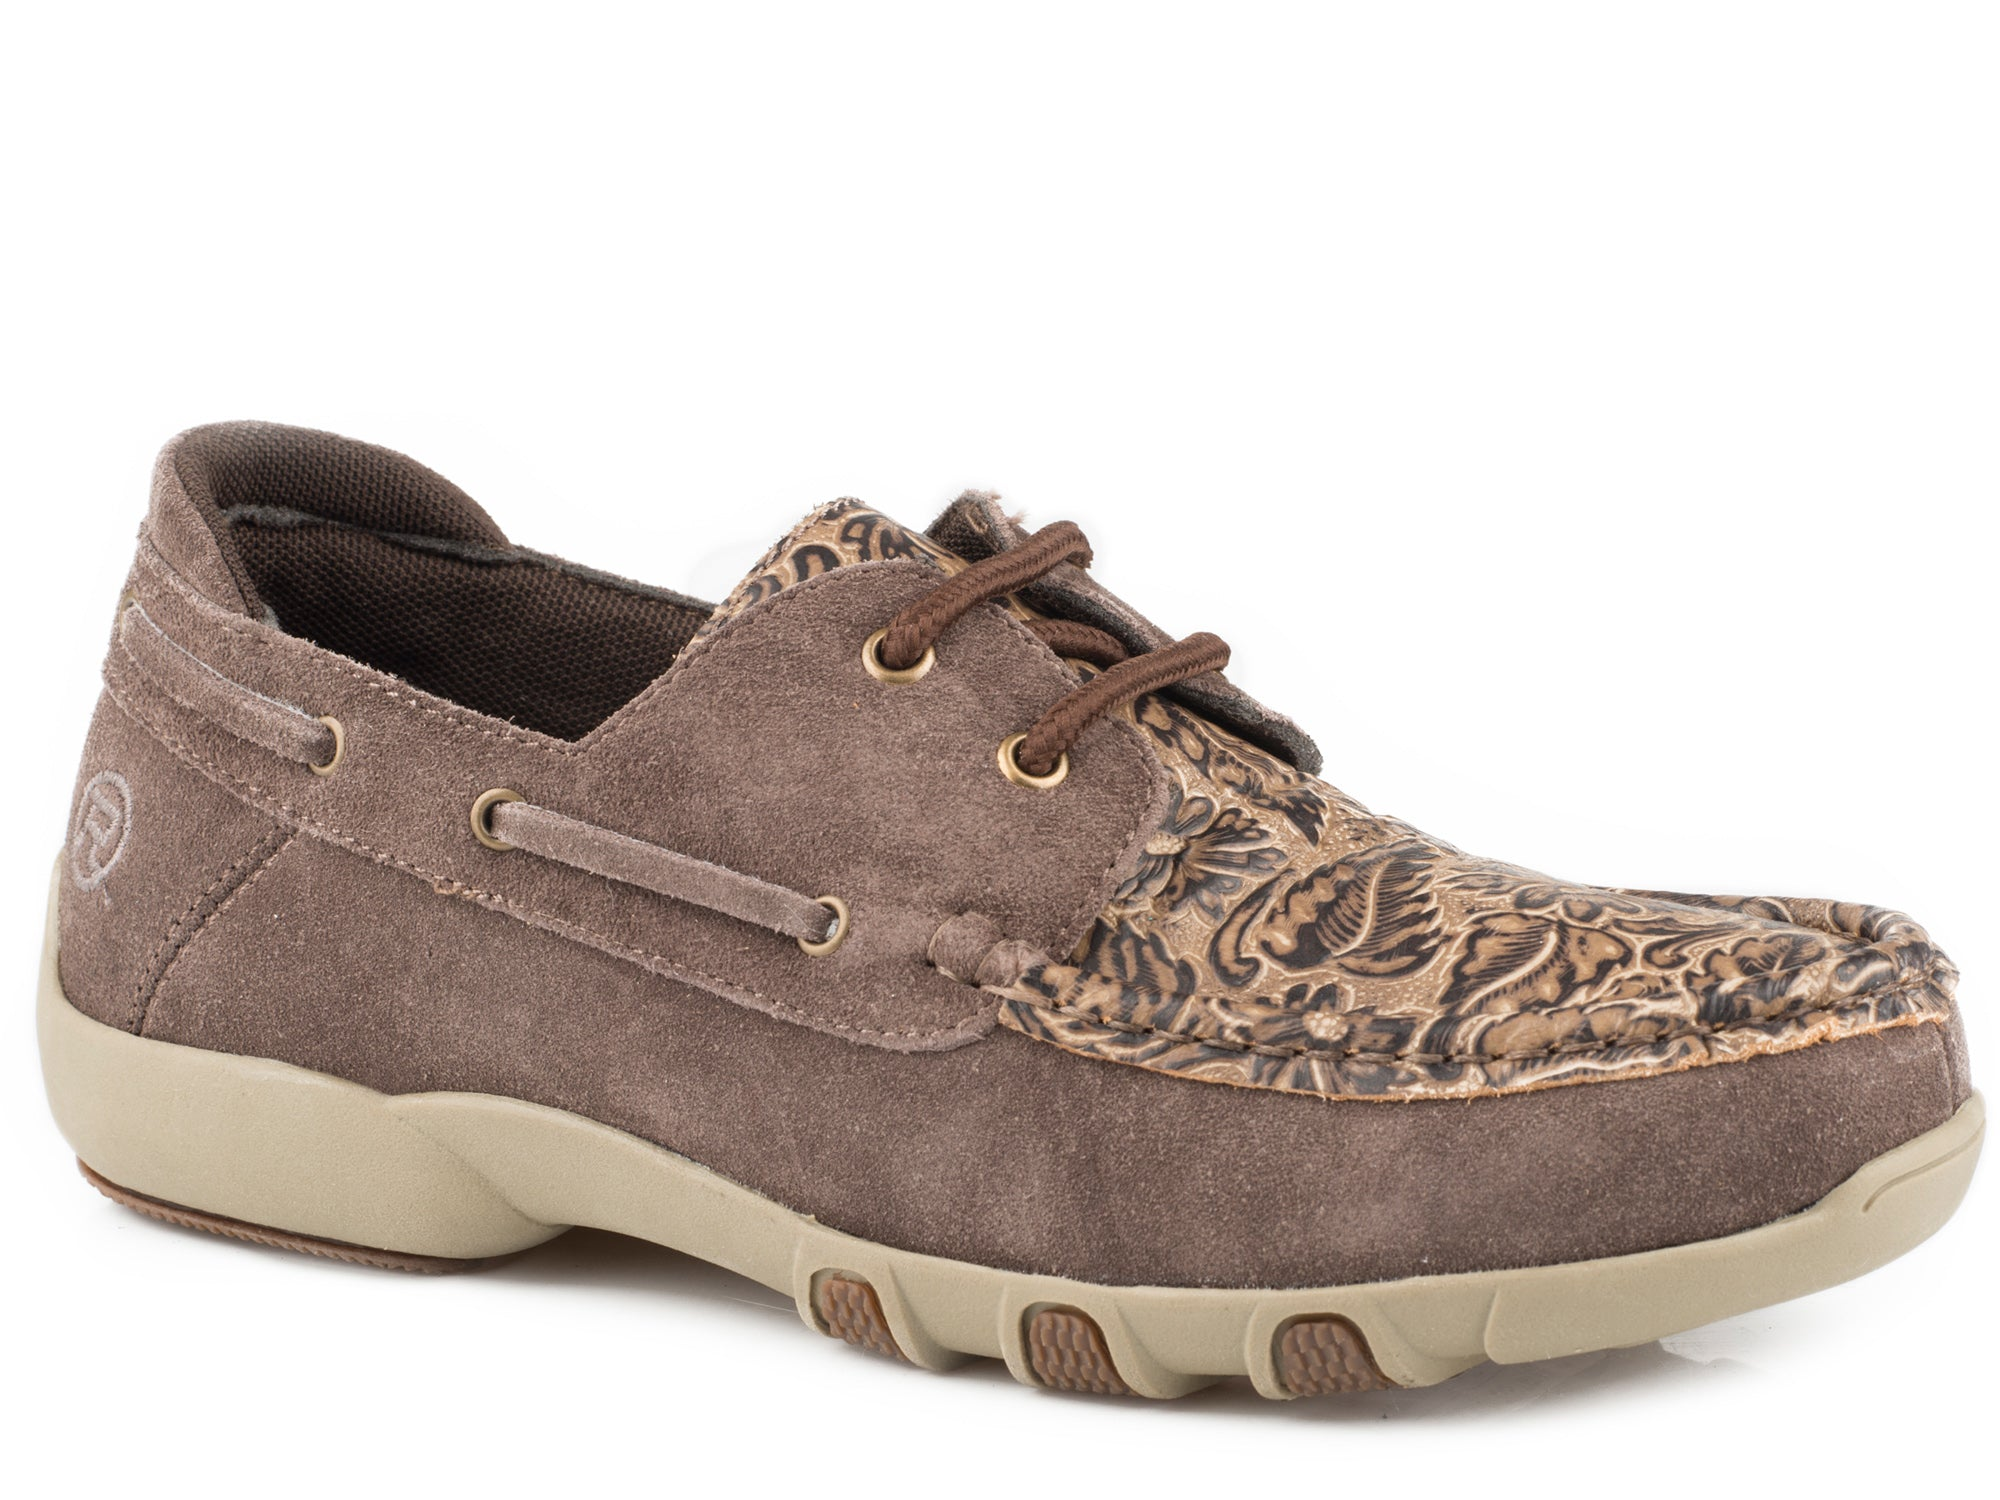 1f398fd7aebb Roper Womens Brown Leather Laced Tooled Slip-On Shoes – The Western ...